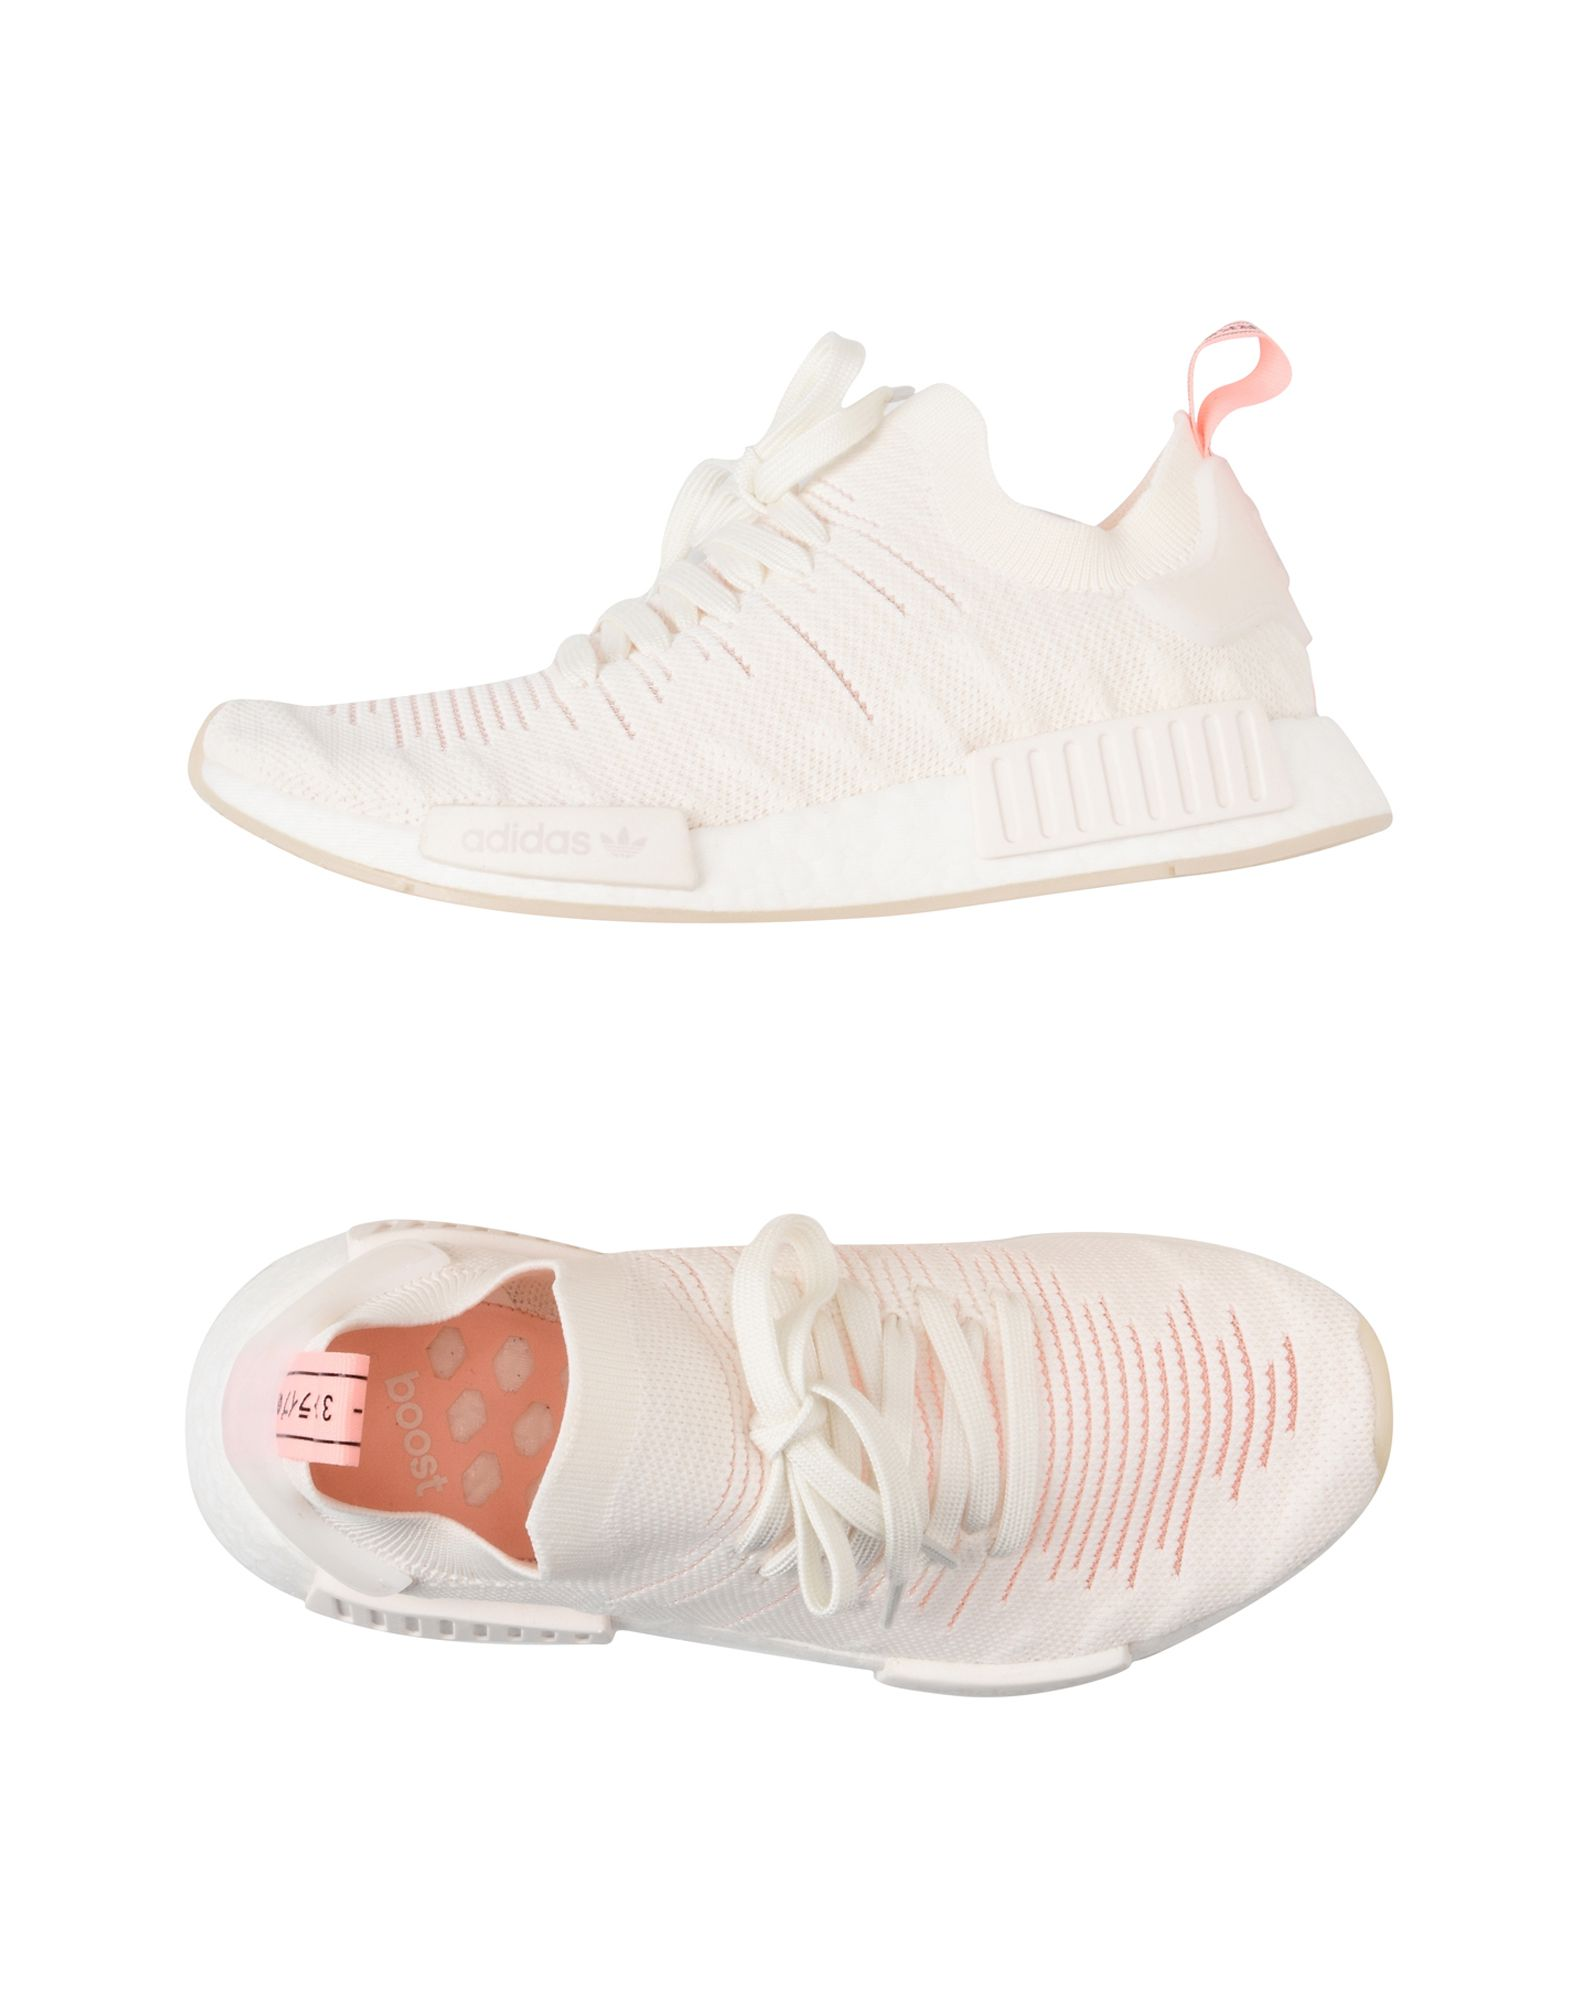 Sneakers Adidas Originals Nmd_R1 Nmd_R1 Originals Stlt Pk W - Donna - 11533715RI 5632a0